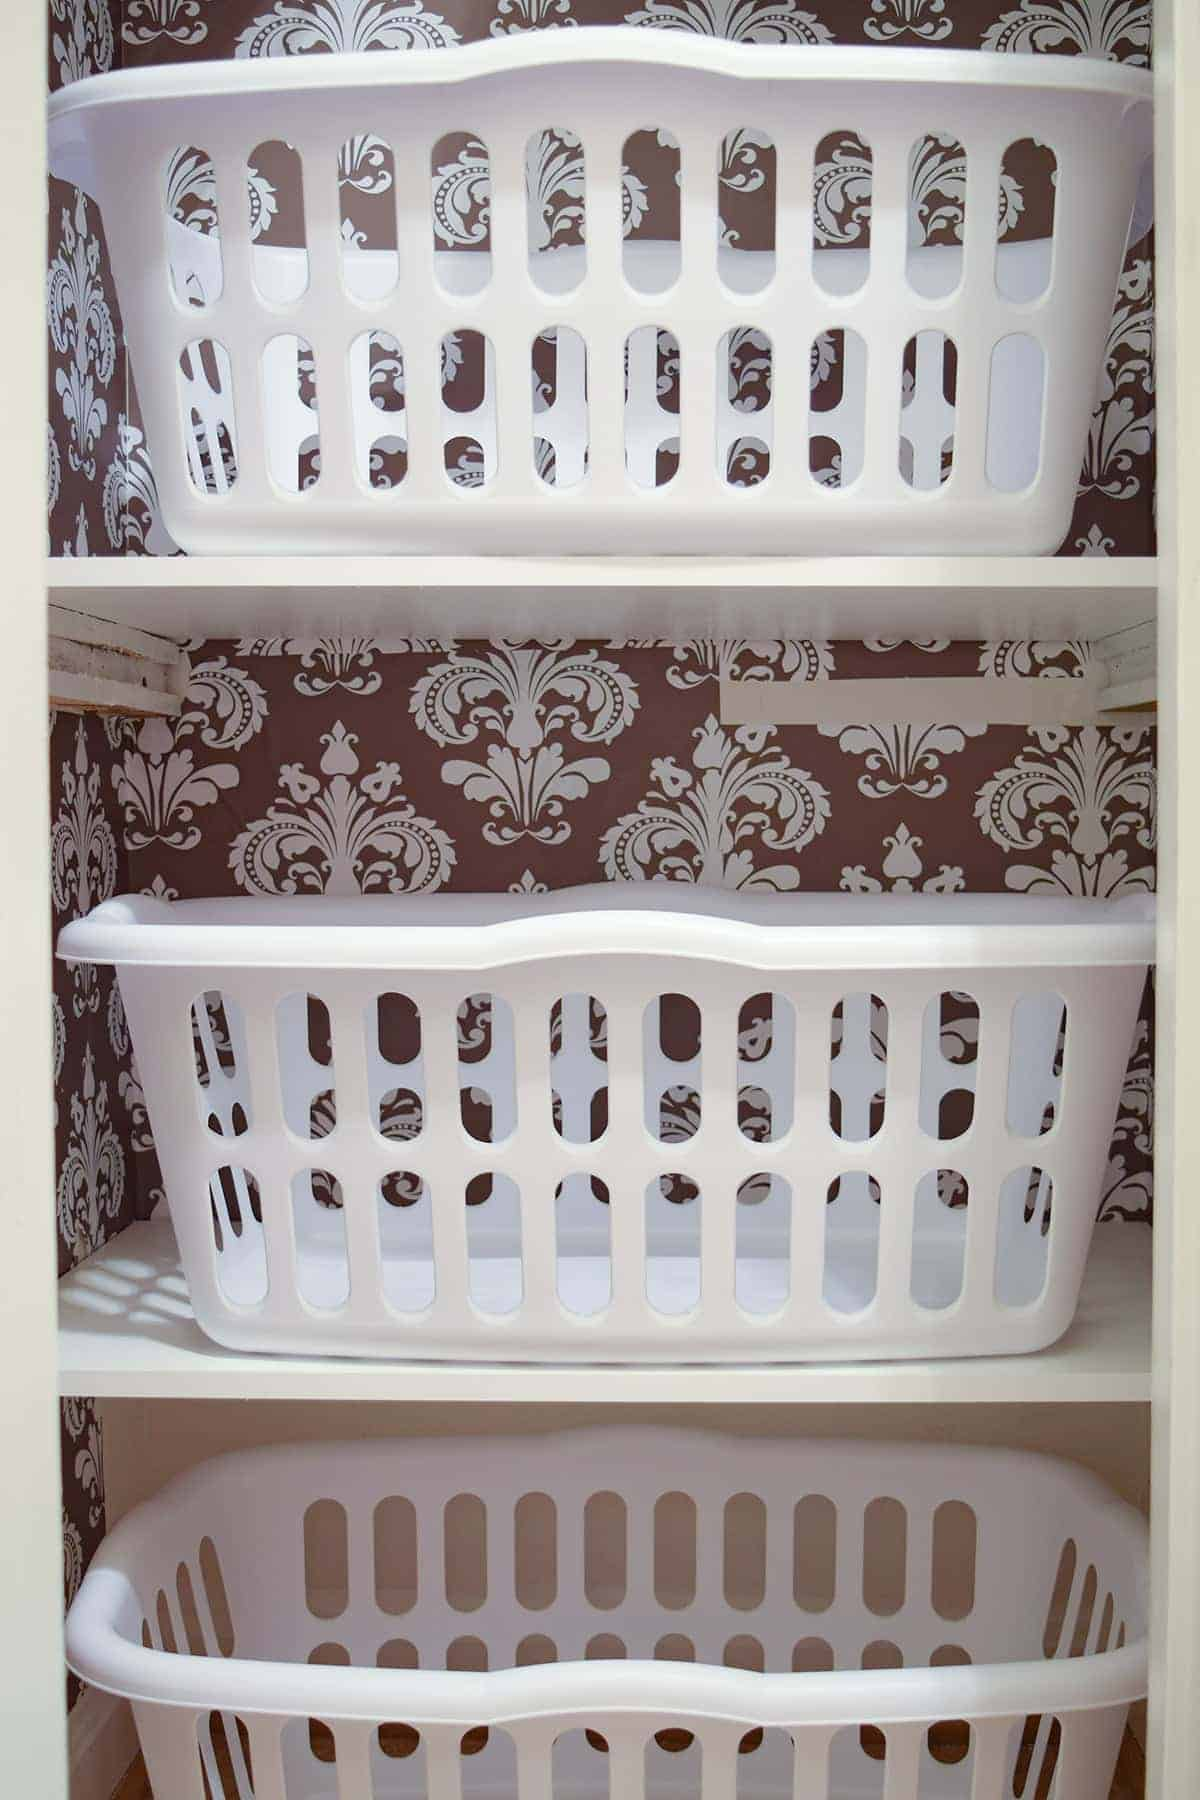 Inside of laundry closet with peel and stick brown and white wall covering, white shelves, and 3 white laundry baskets.